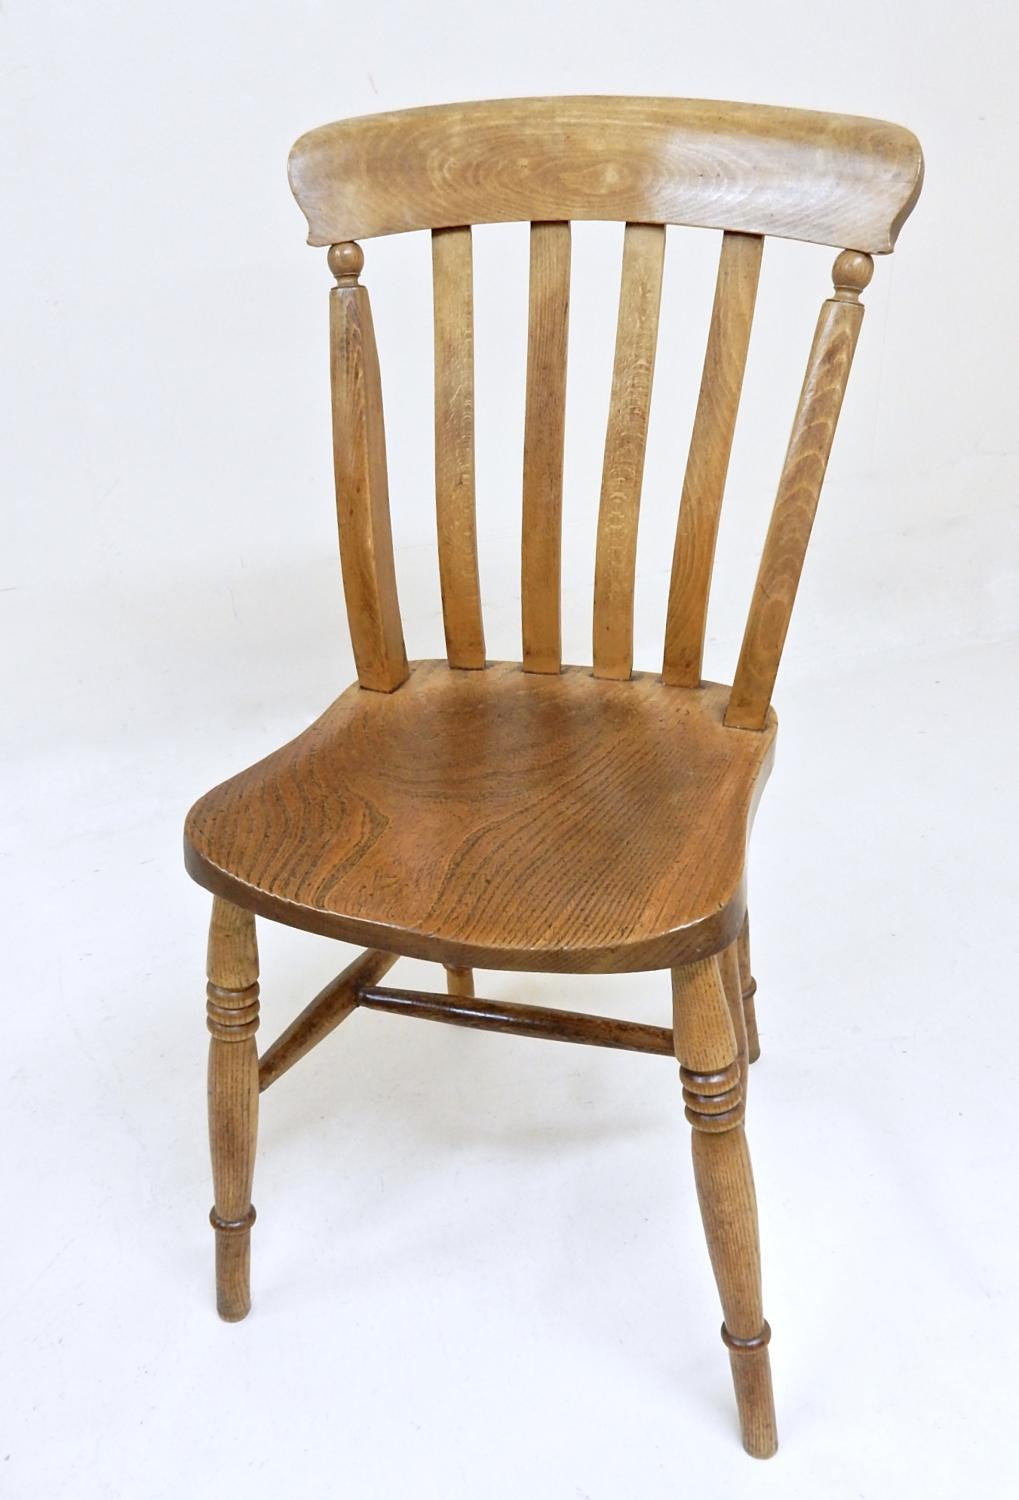 Antique Kitchen Tables And Chairs Bing Images